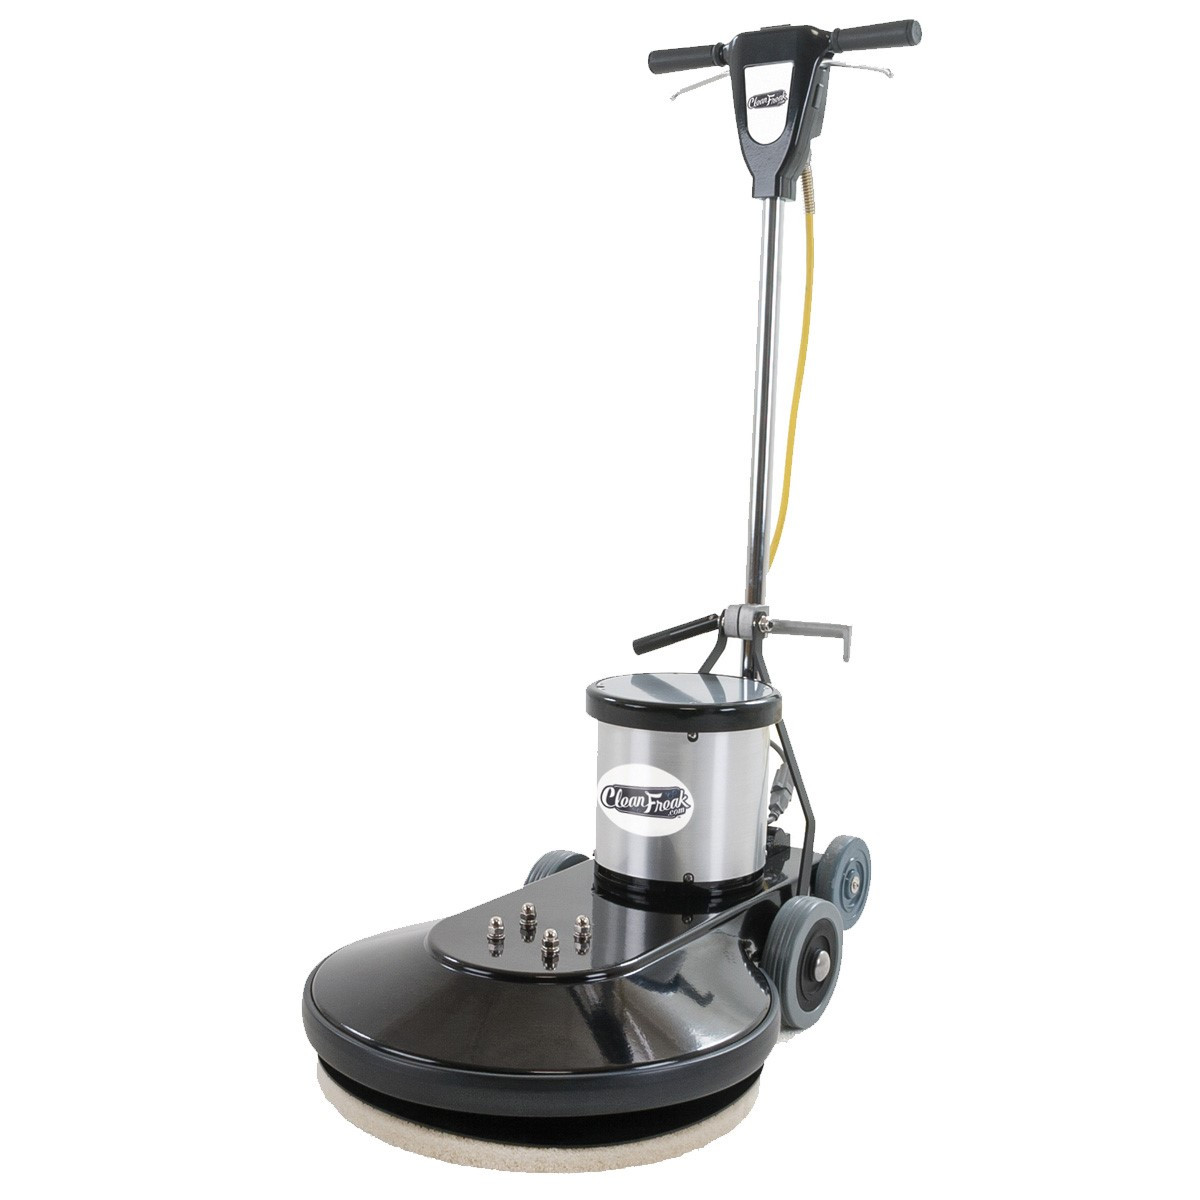 High speed floor burnisher cleanfreak 1500 rpm machine for 13 inch floor buffer